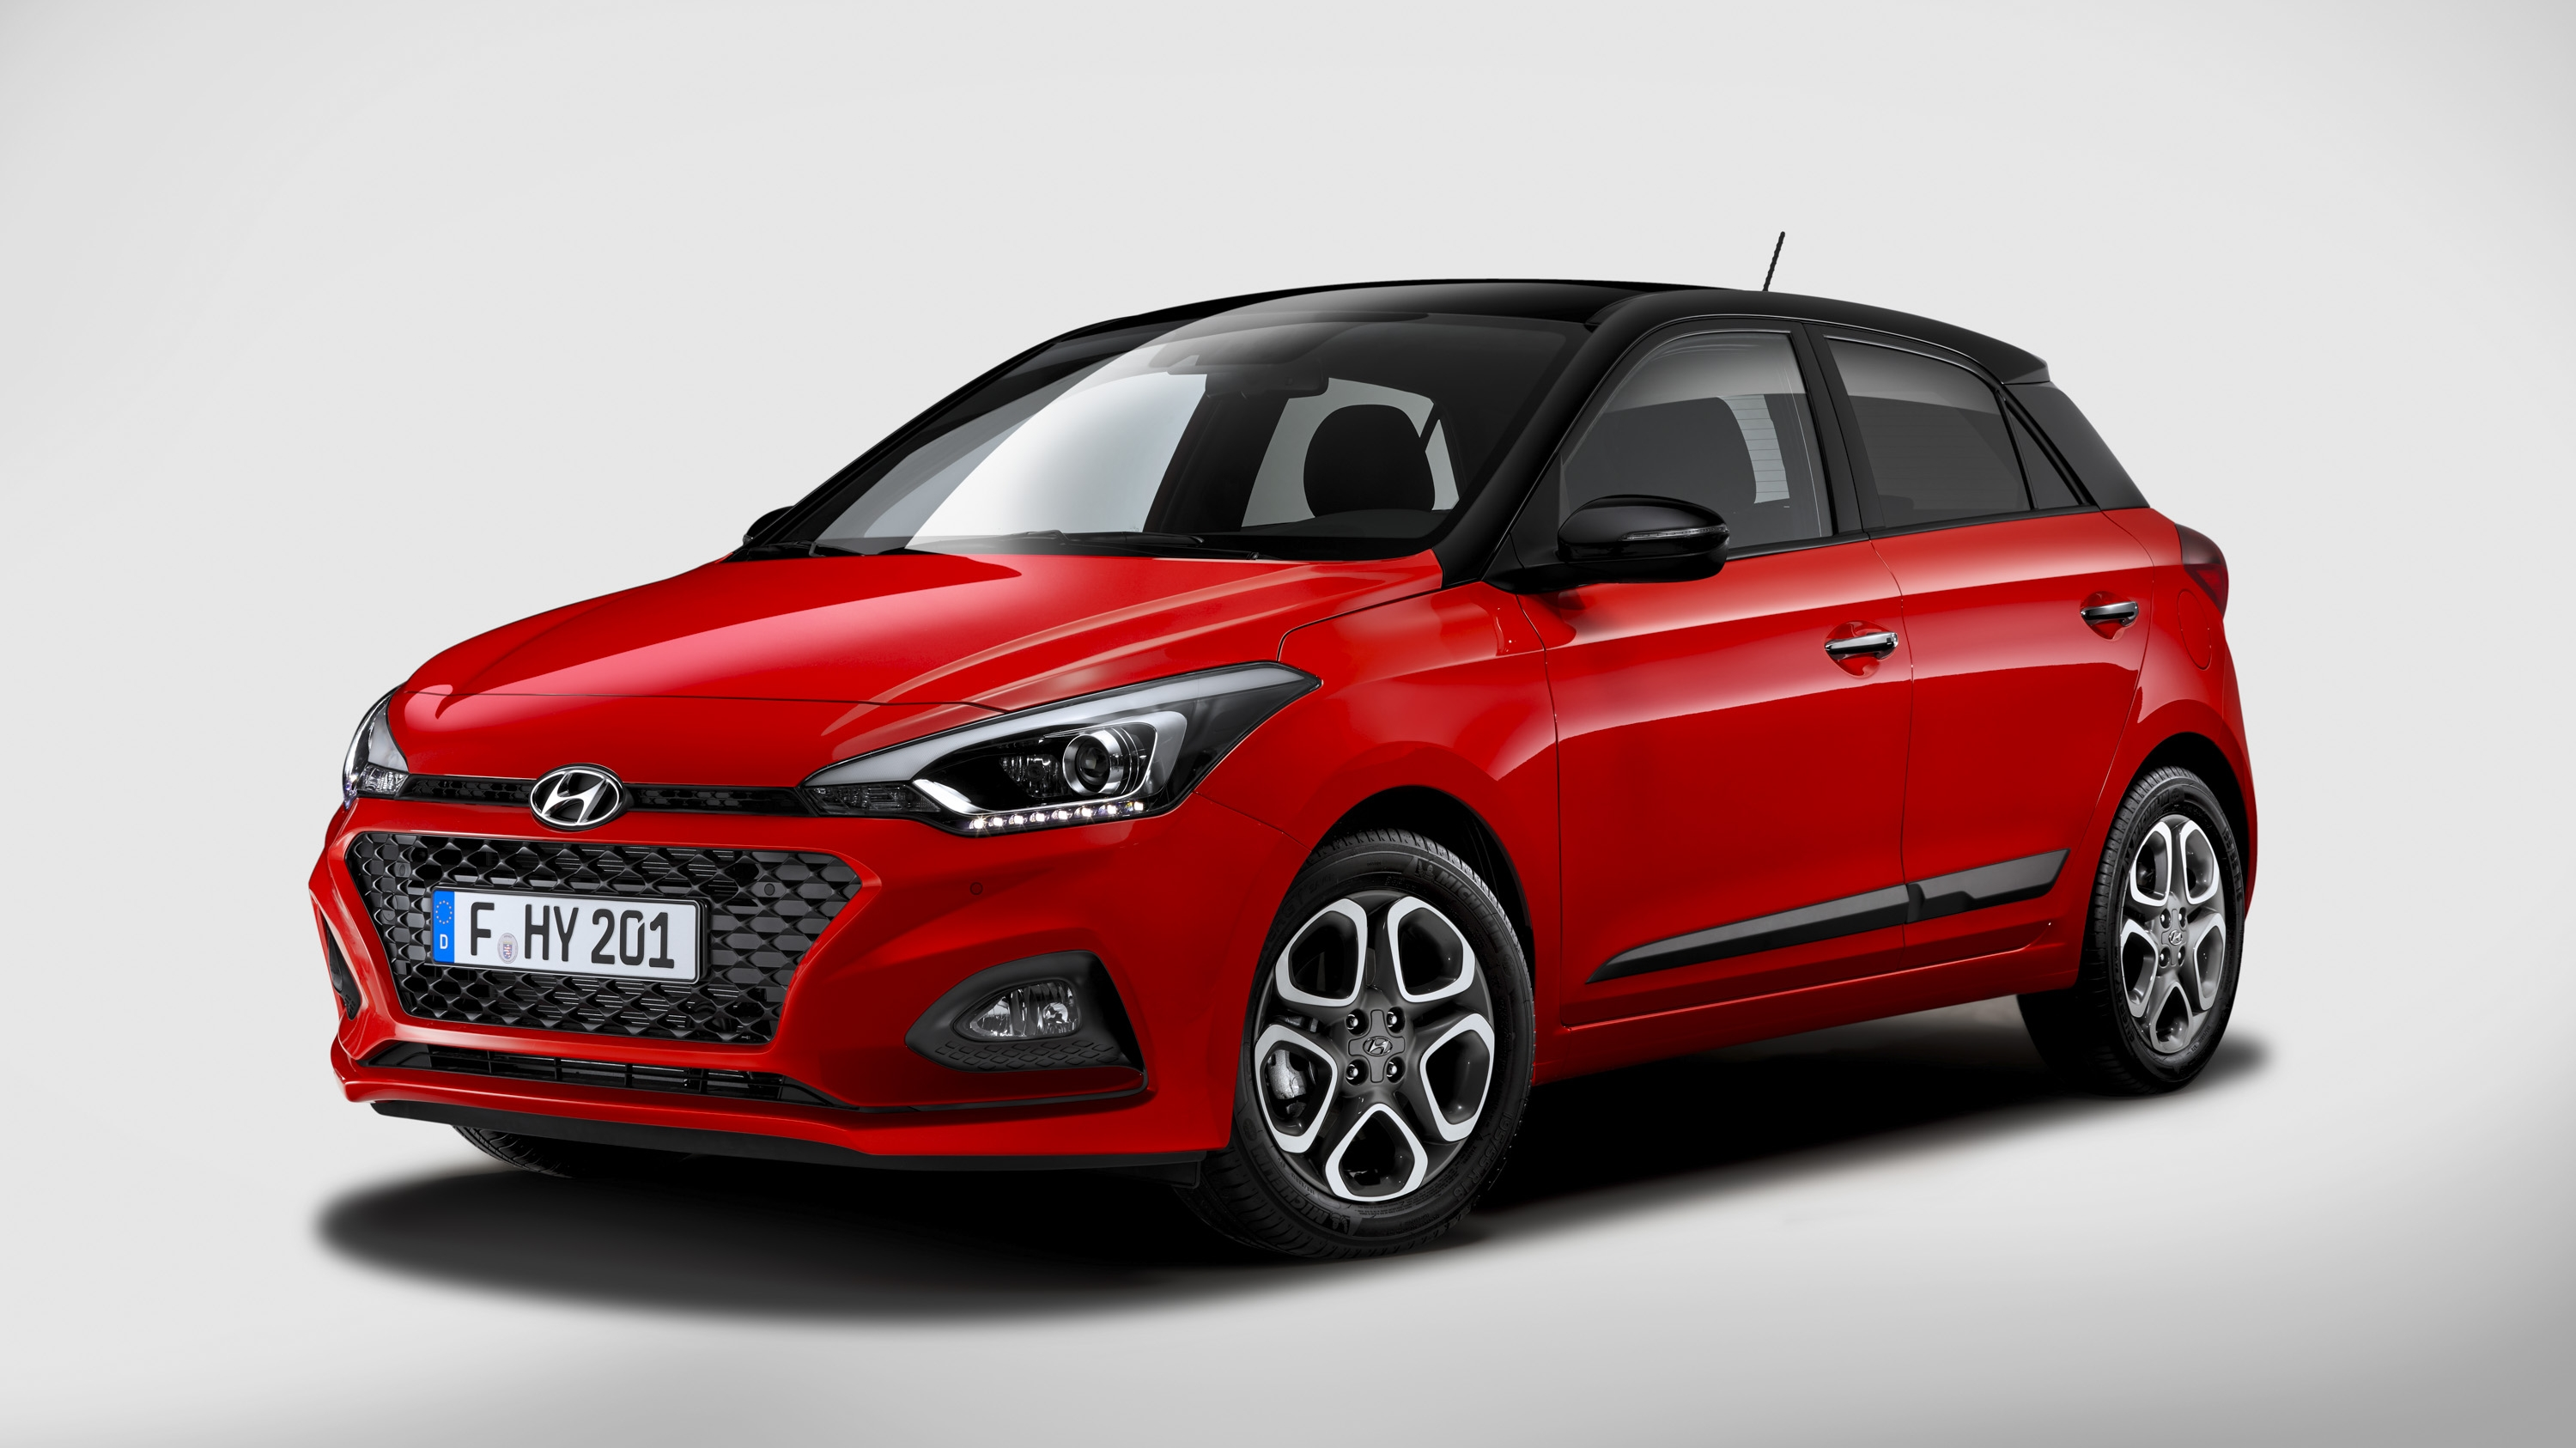 hyundai i20 updated with bold design and new tech. Black Bedroom Furniture Sets. Home Design Ideas